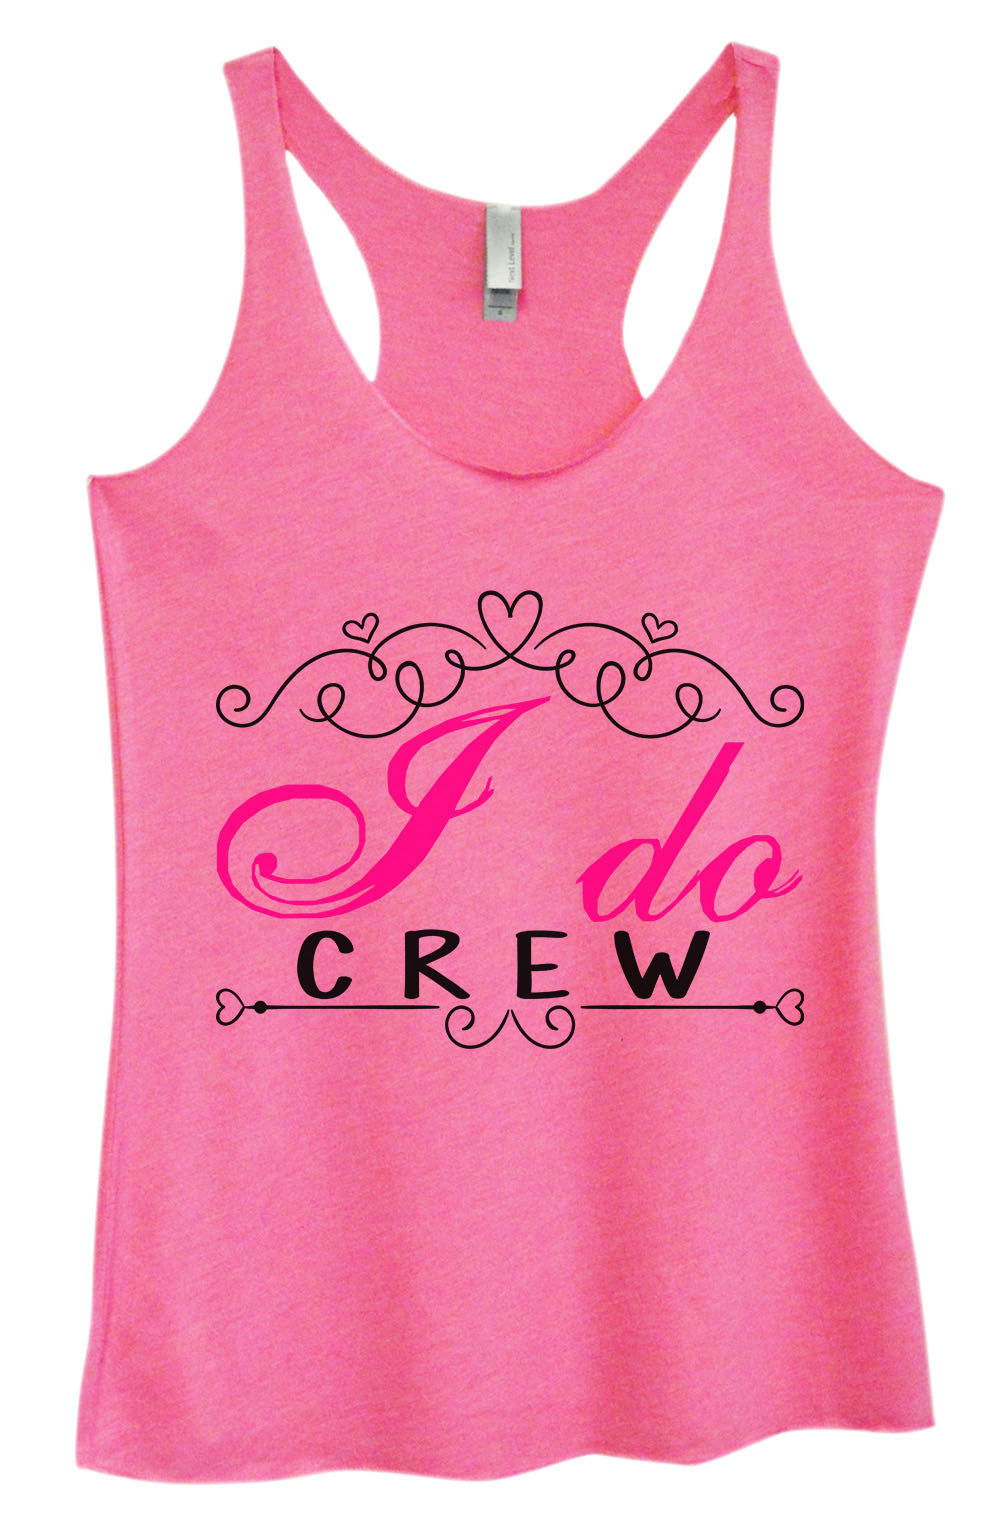 Womens Fashion Triblend Tank Top - I Do Crew - Tri-1374 - Funny Shirts Tank Tops Burnouts and Triblends  - 4